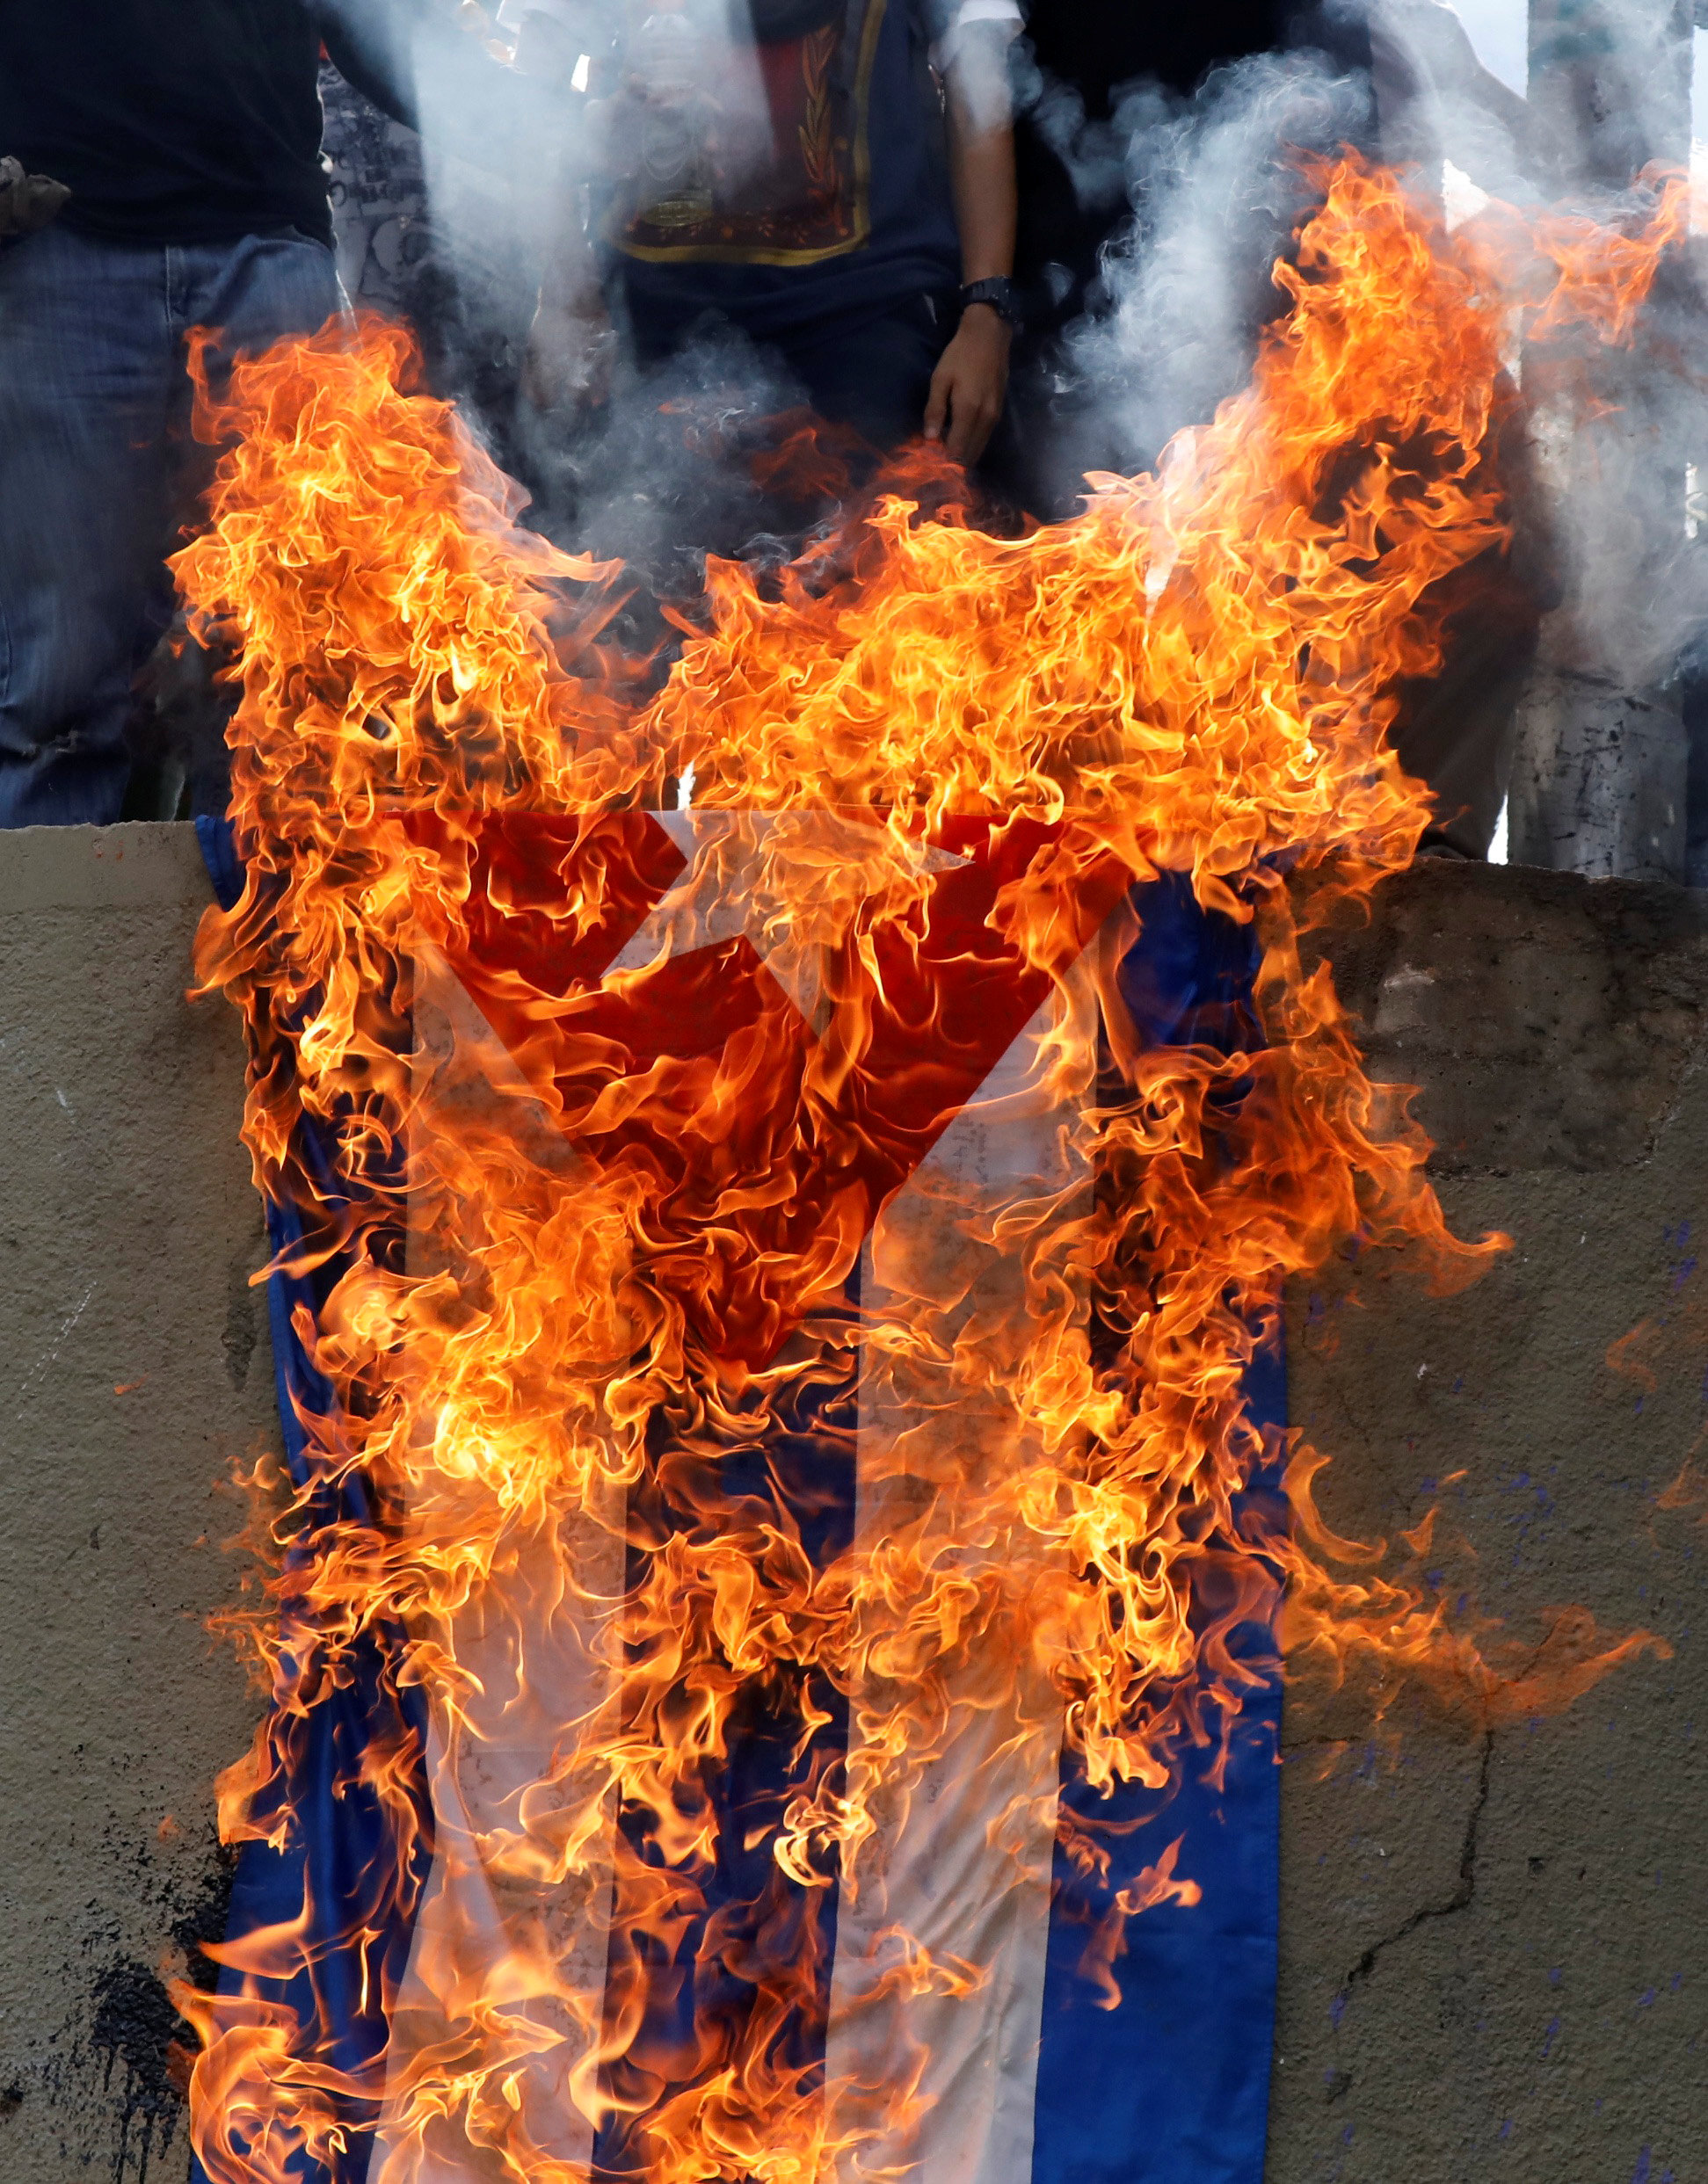 Demonstrators burn a Cuban flag while rallying against Venezuela's President Nicolas Maduro in Caracas, Venezuela, June 10, 2017. REUTERS/Carlos Garcia Rawlins